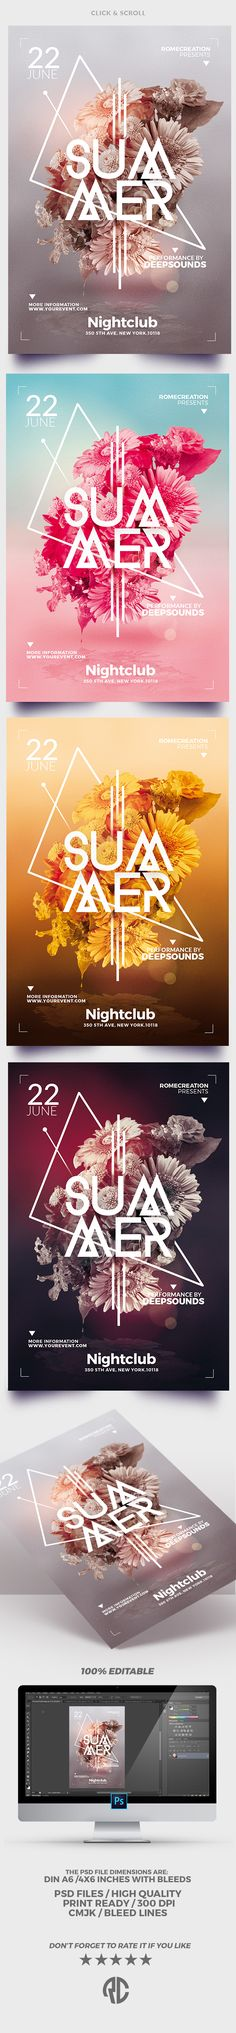 Minimalist Summer - Flyer Templates (4 versions) - Creative Design very easy to edit and perfect to promote your Summer Party !